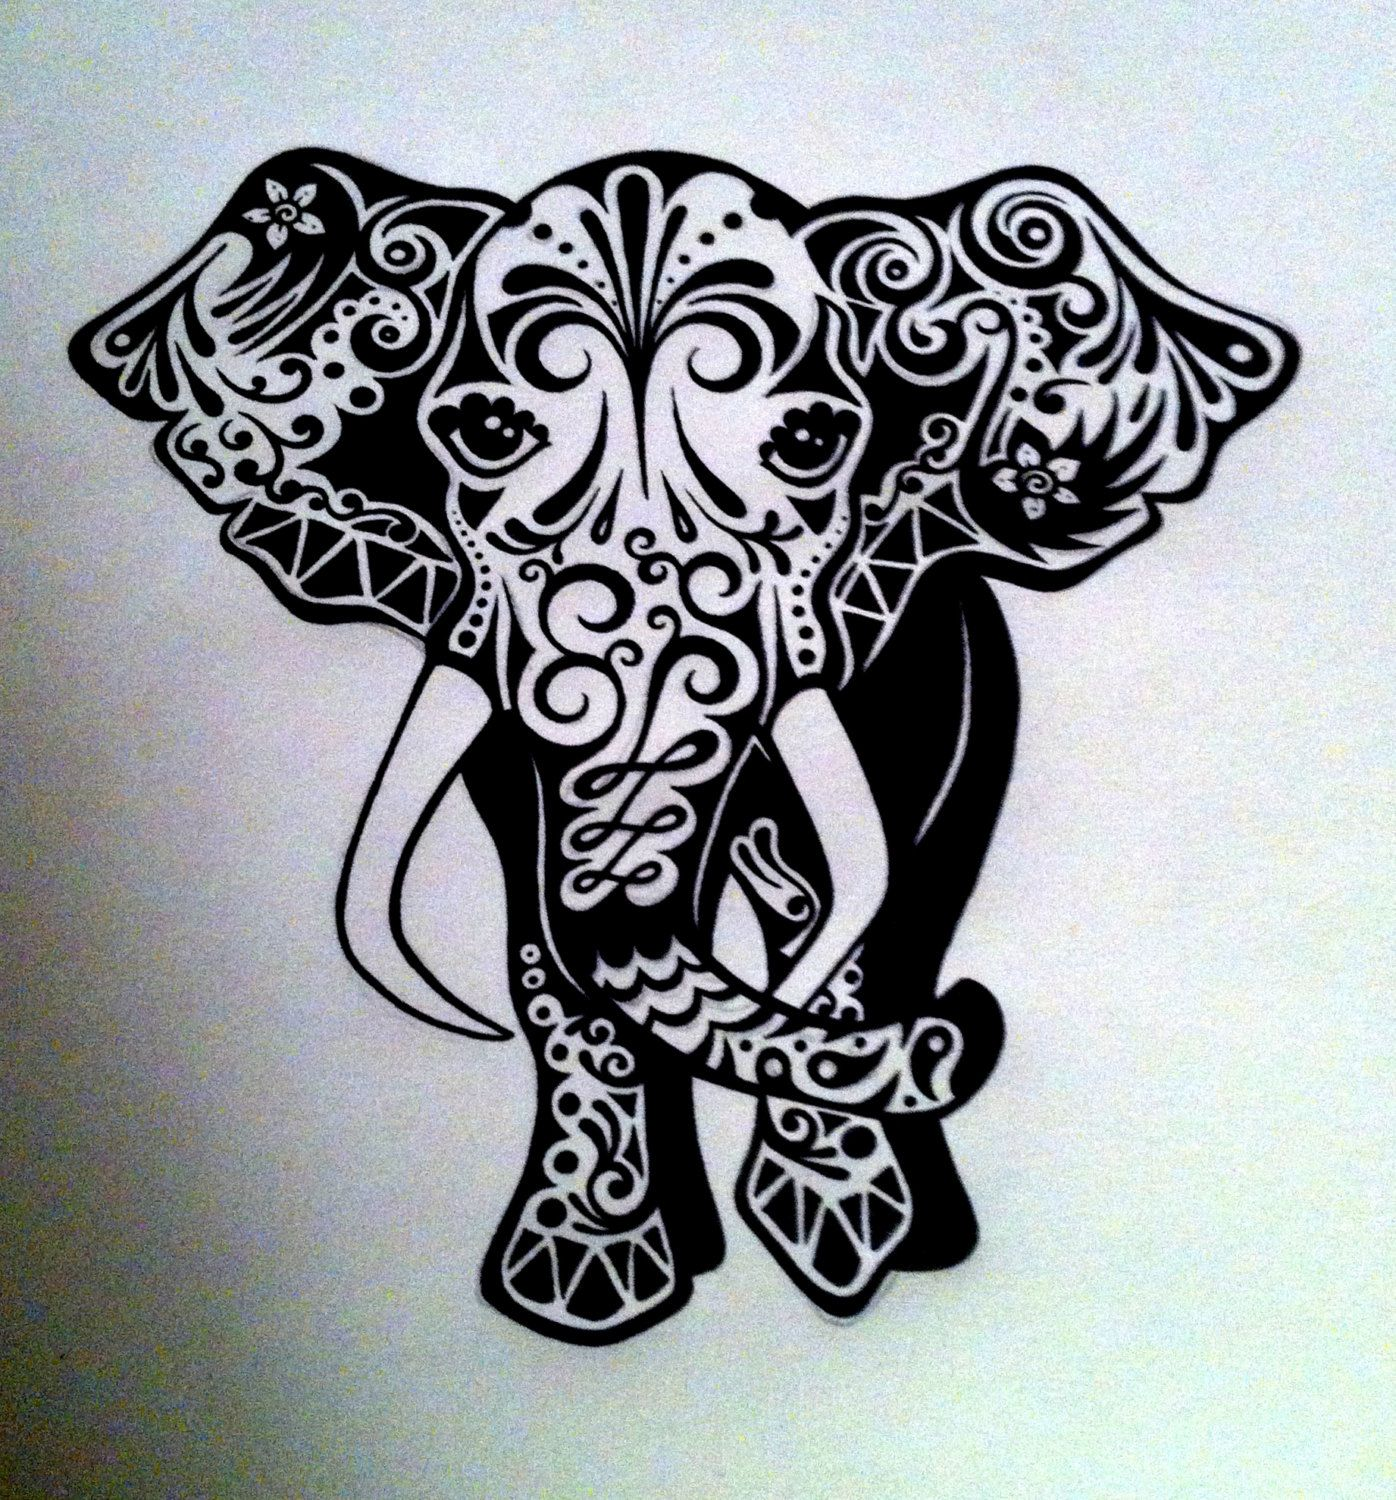 Mehndi Elephant Meaning : I love the femininity with her eyes she looks strong and